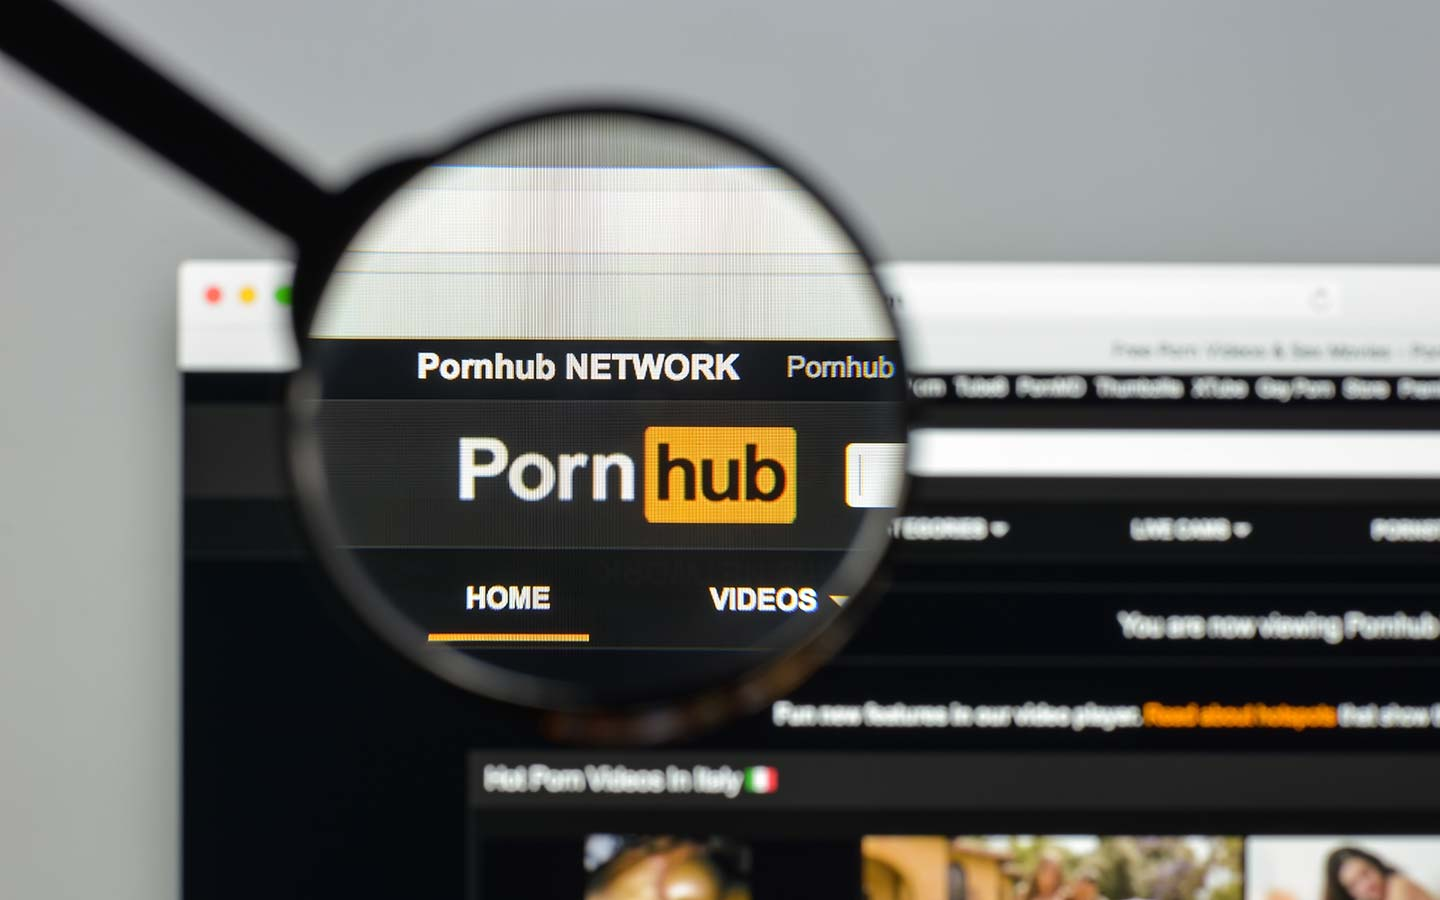 The difference in culture preference for PornHub usage